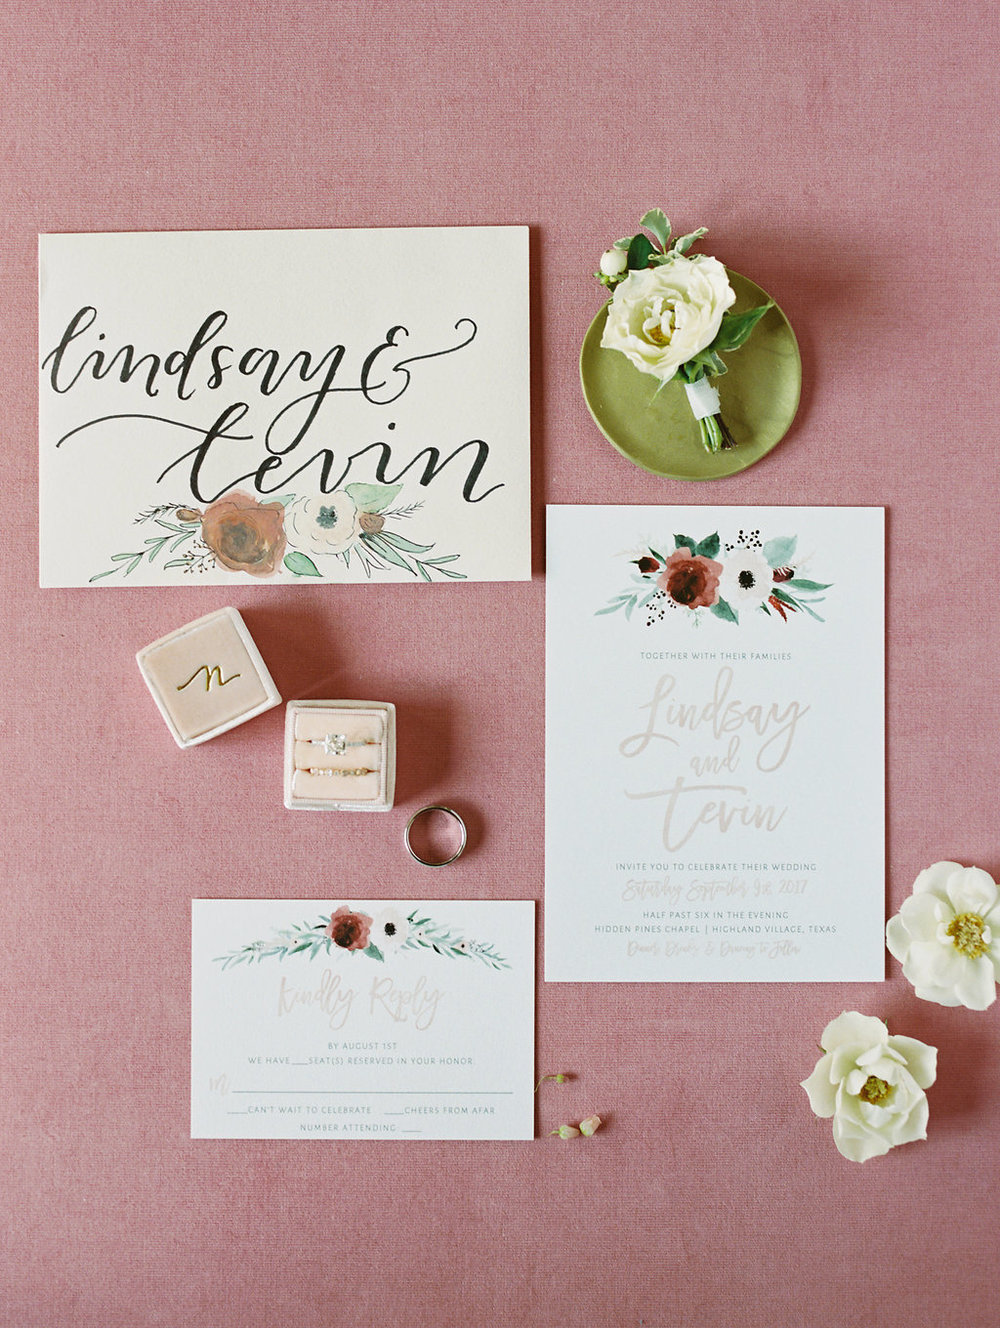 Floral Design Wedding Invitations - Dallas Wedding Planner